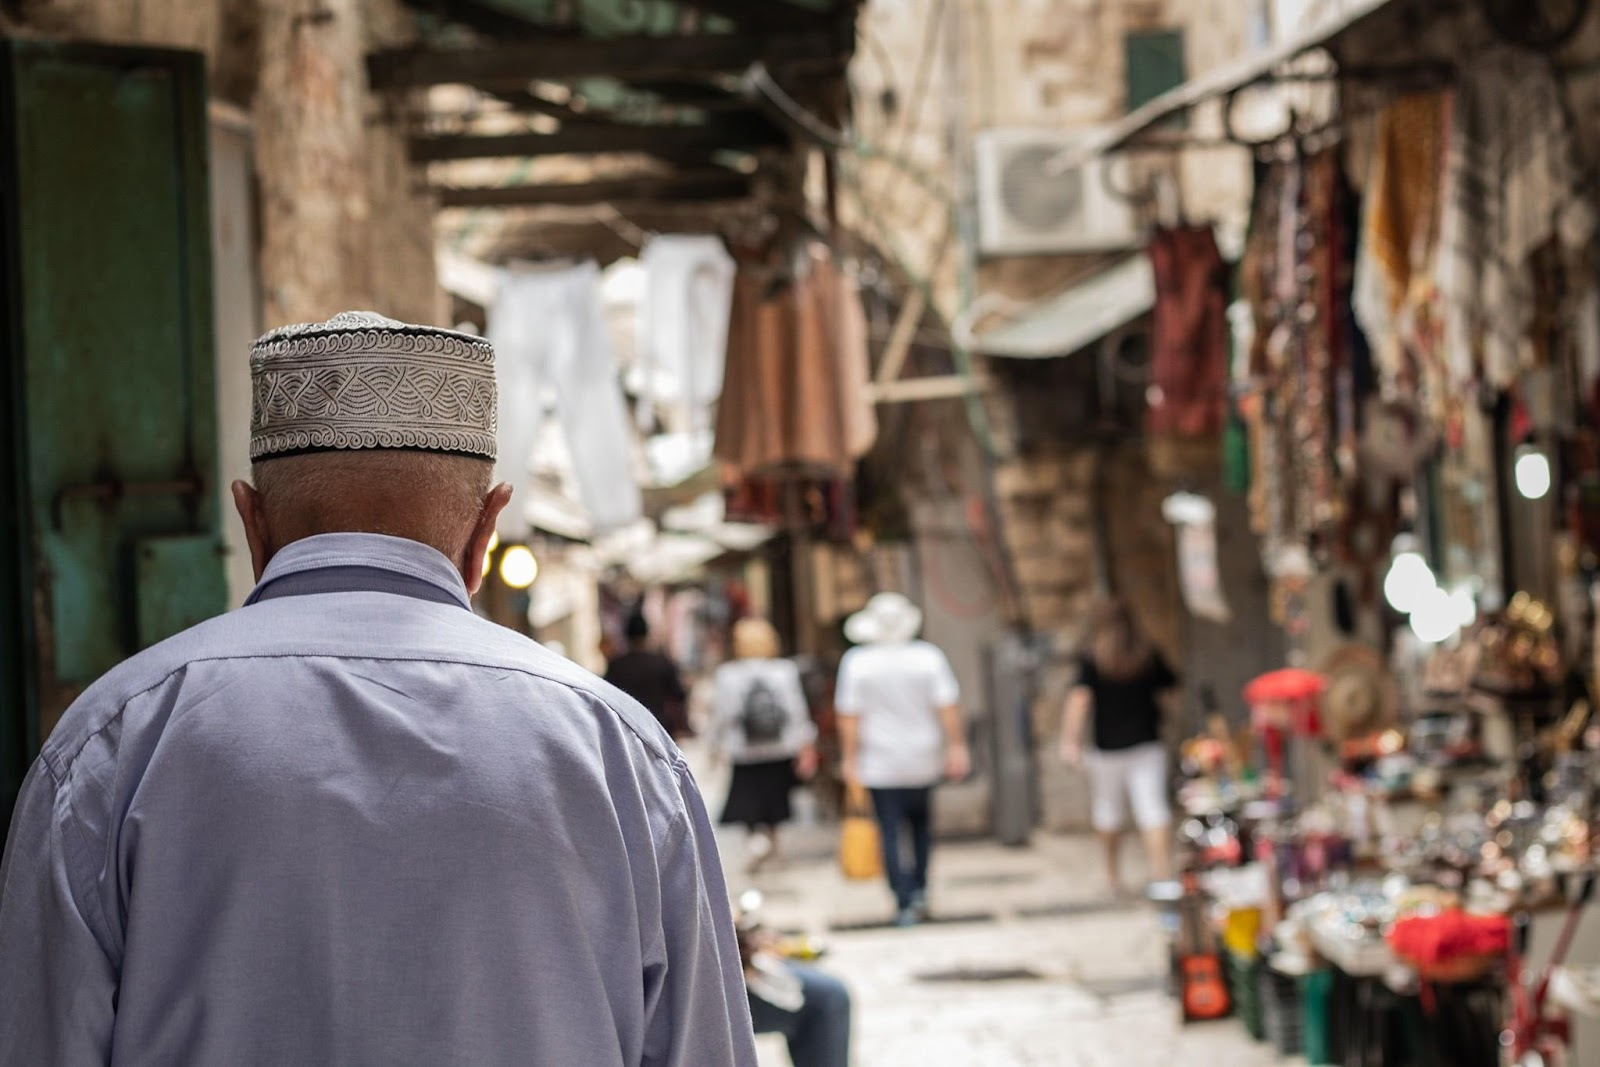 An elder Palestinian man in the streets of the Old City in Jerusalem